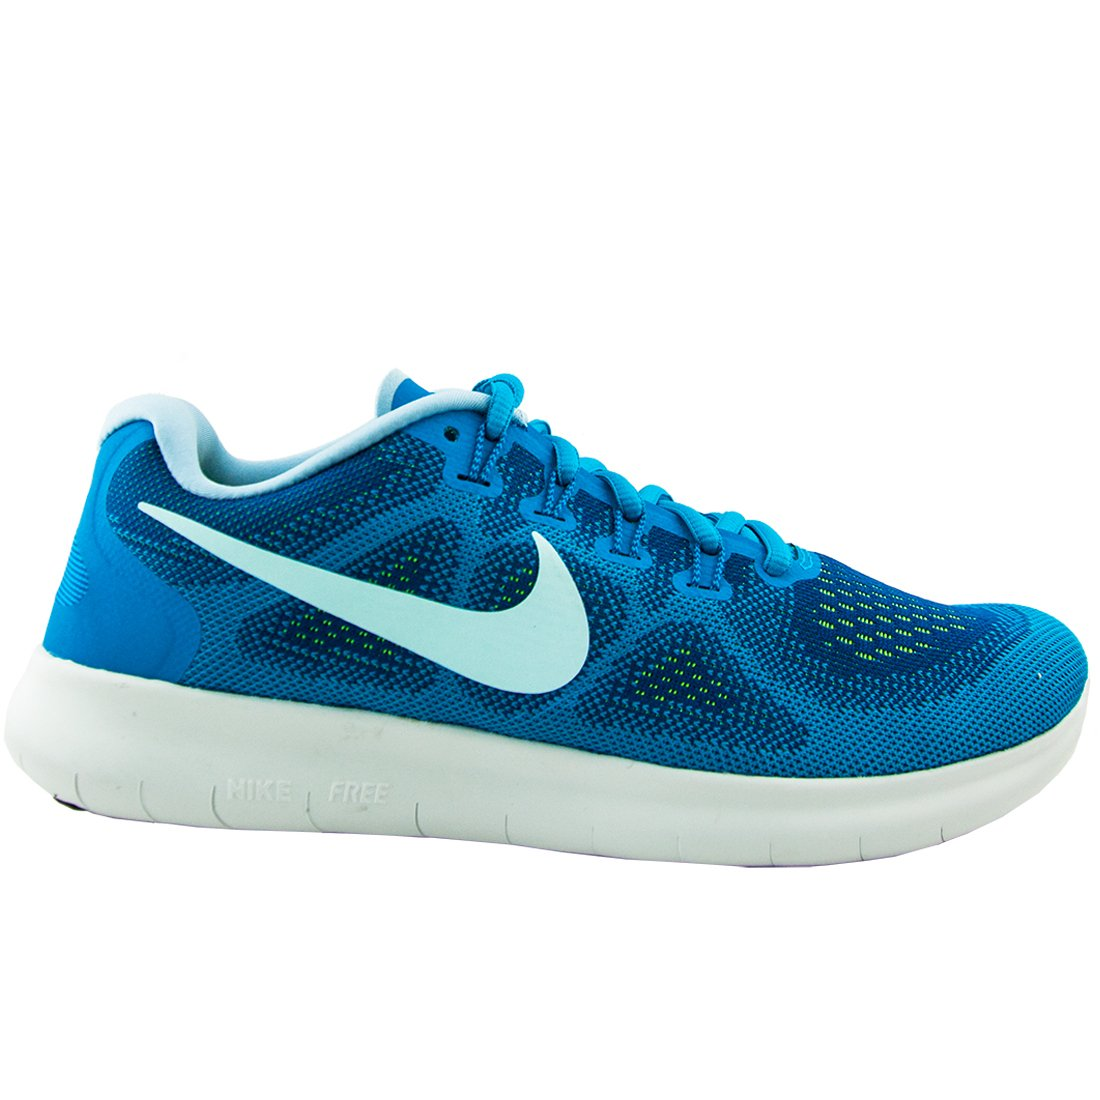 NIKE Womens Free RN 2017 Running Trainers 880840 Sneakers Shoes (US 7, Gym Blue Glacier Blue 401)